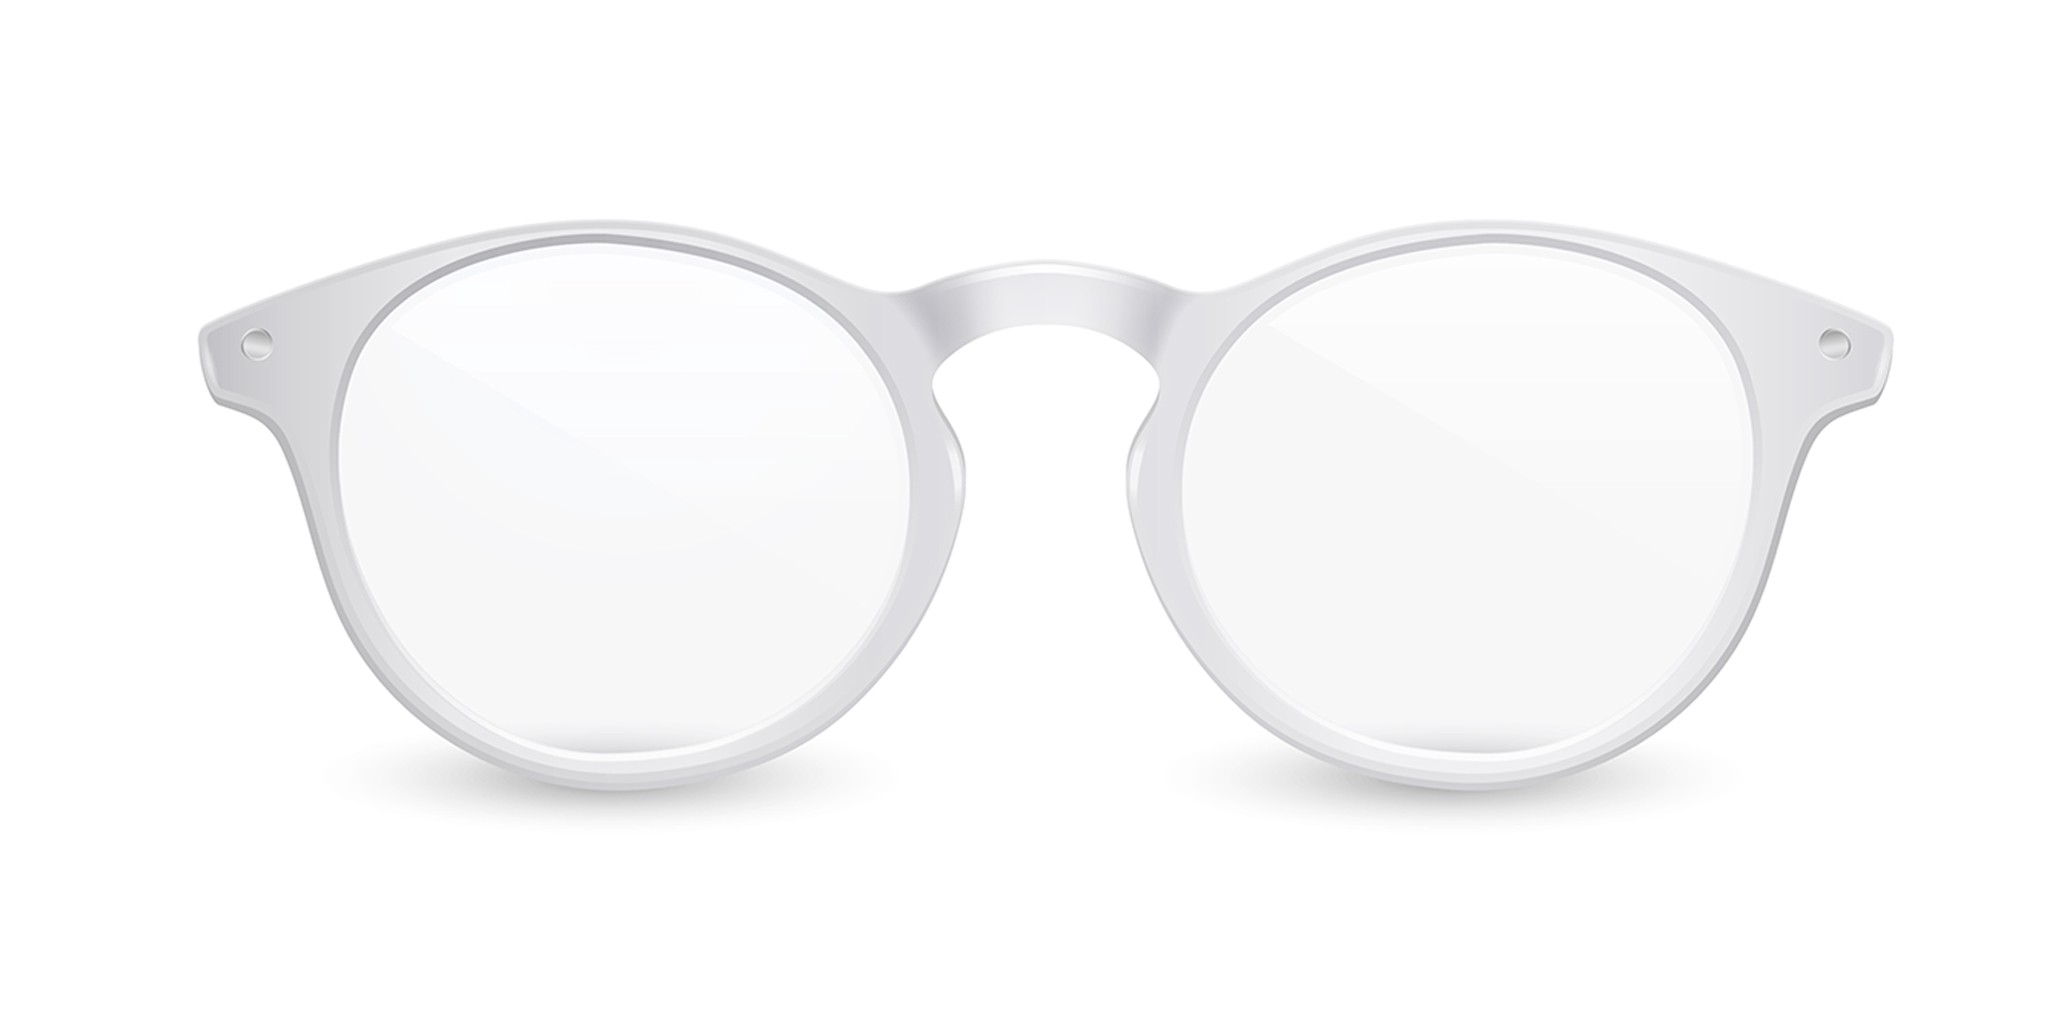 3d generated white glasses on white background